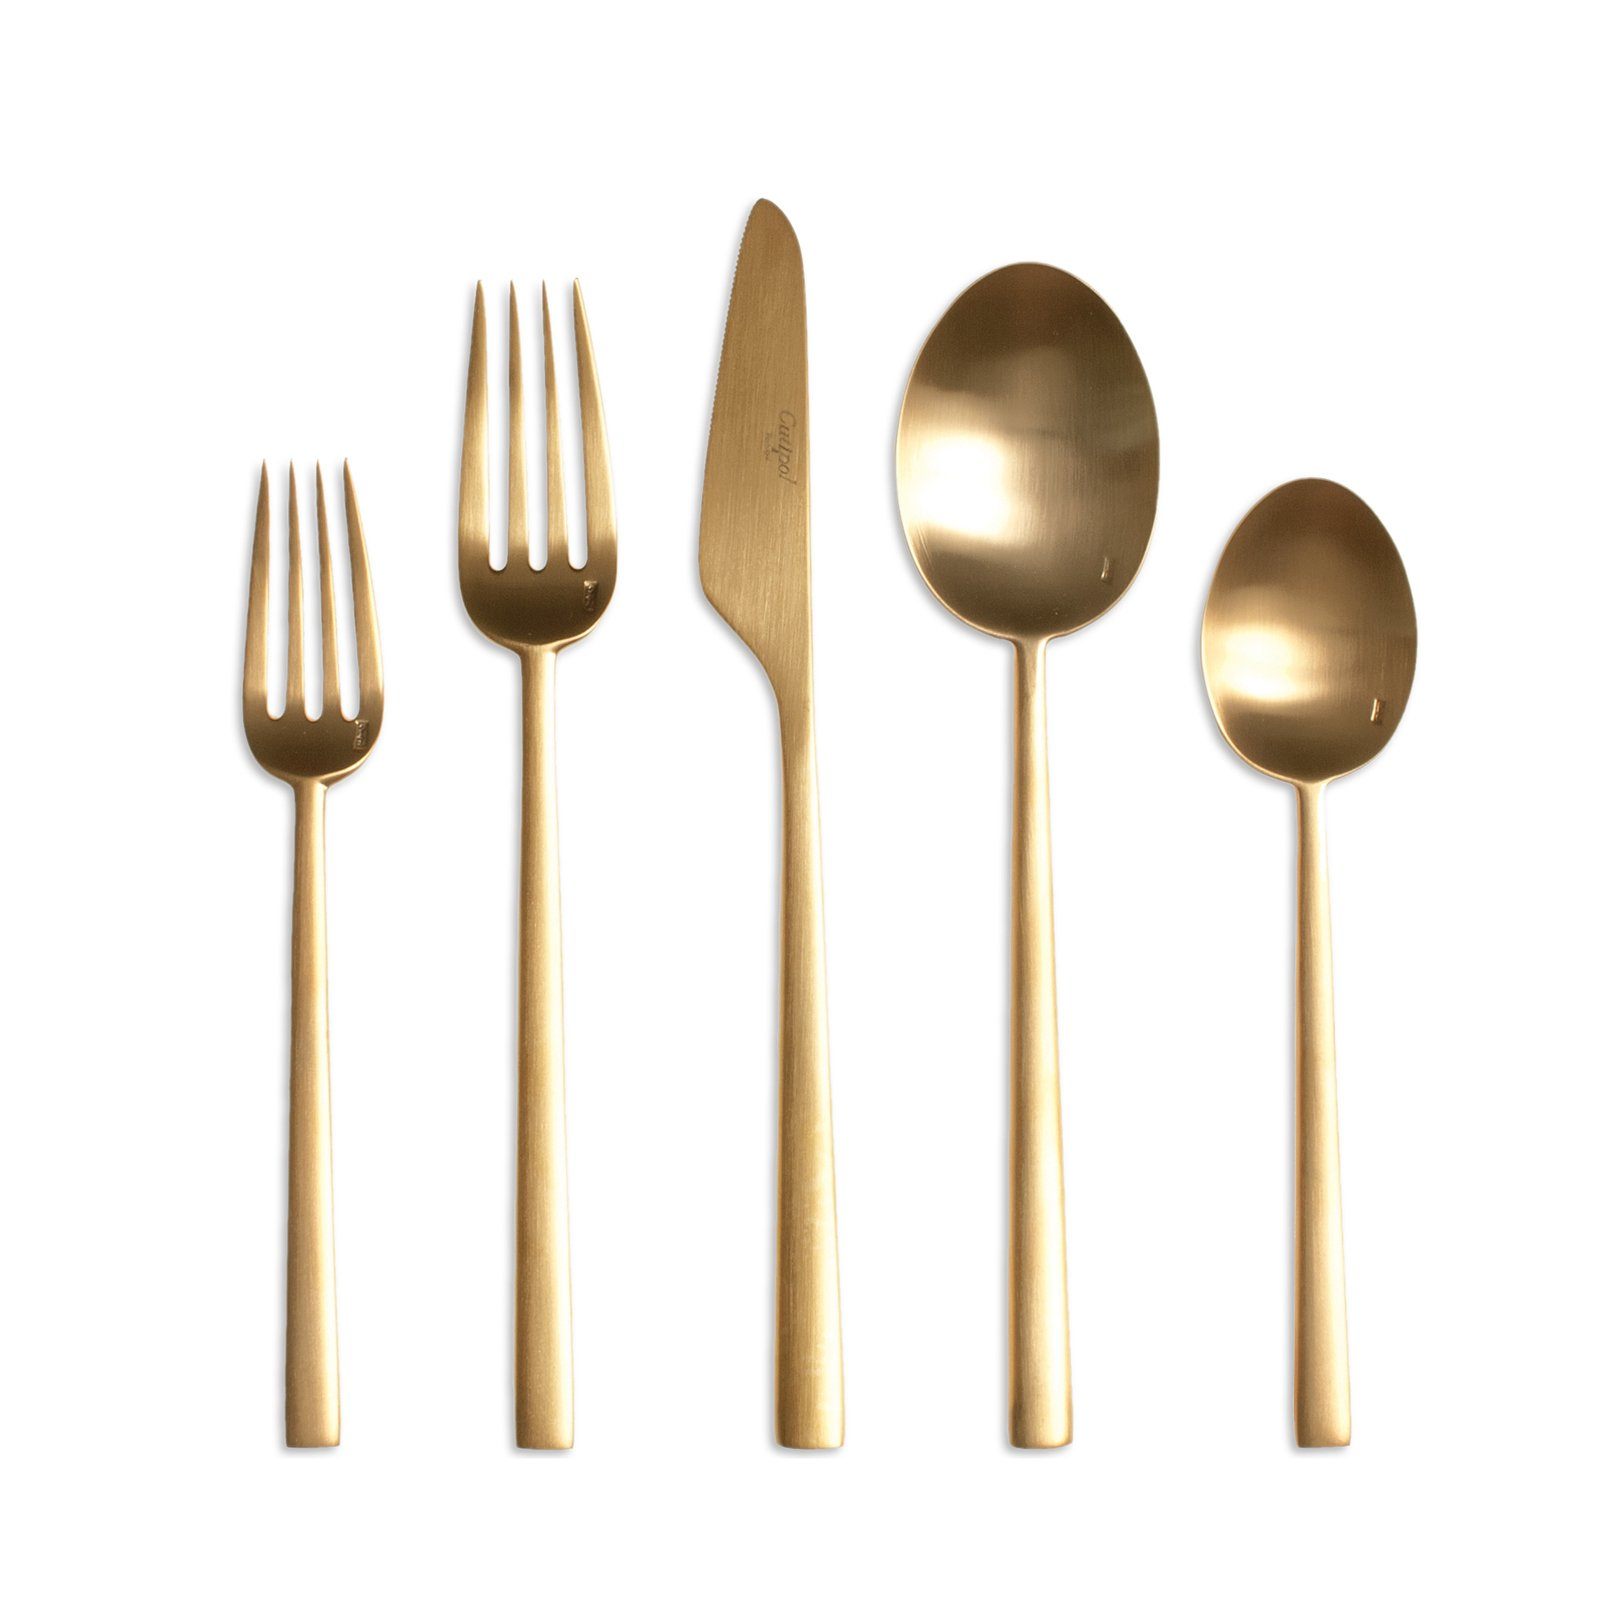 Stainless steel may be the modern flatware standard, but warm-toned metals are making a comeback and we love this line designed by Cutipol, a Portuguese company schooled in the fine art of cutlery craftsmanship.  Fall Design Trend: Gold, Brass, and Copper Accents by Megan Hamaker from New Modern Cutlery Picks